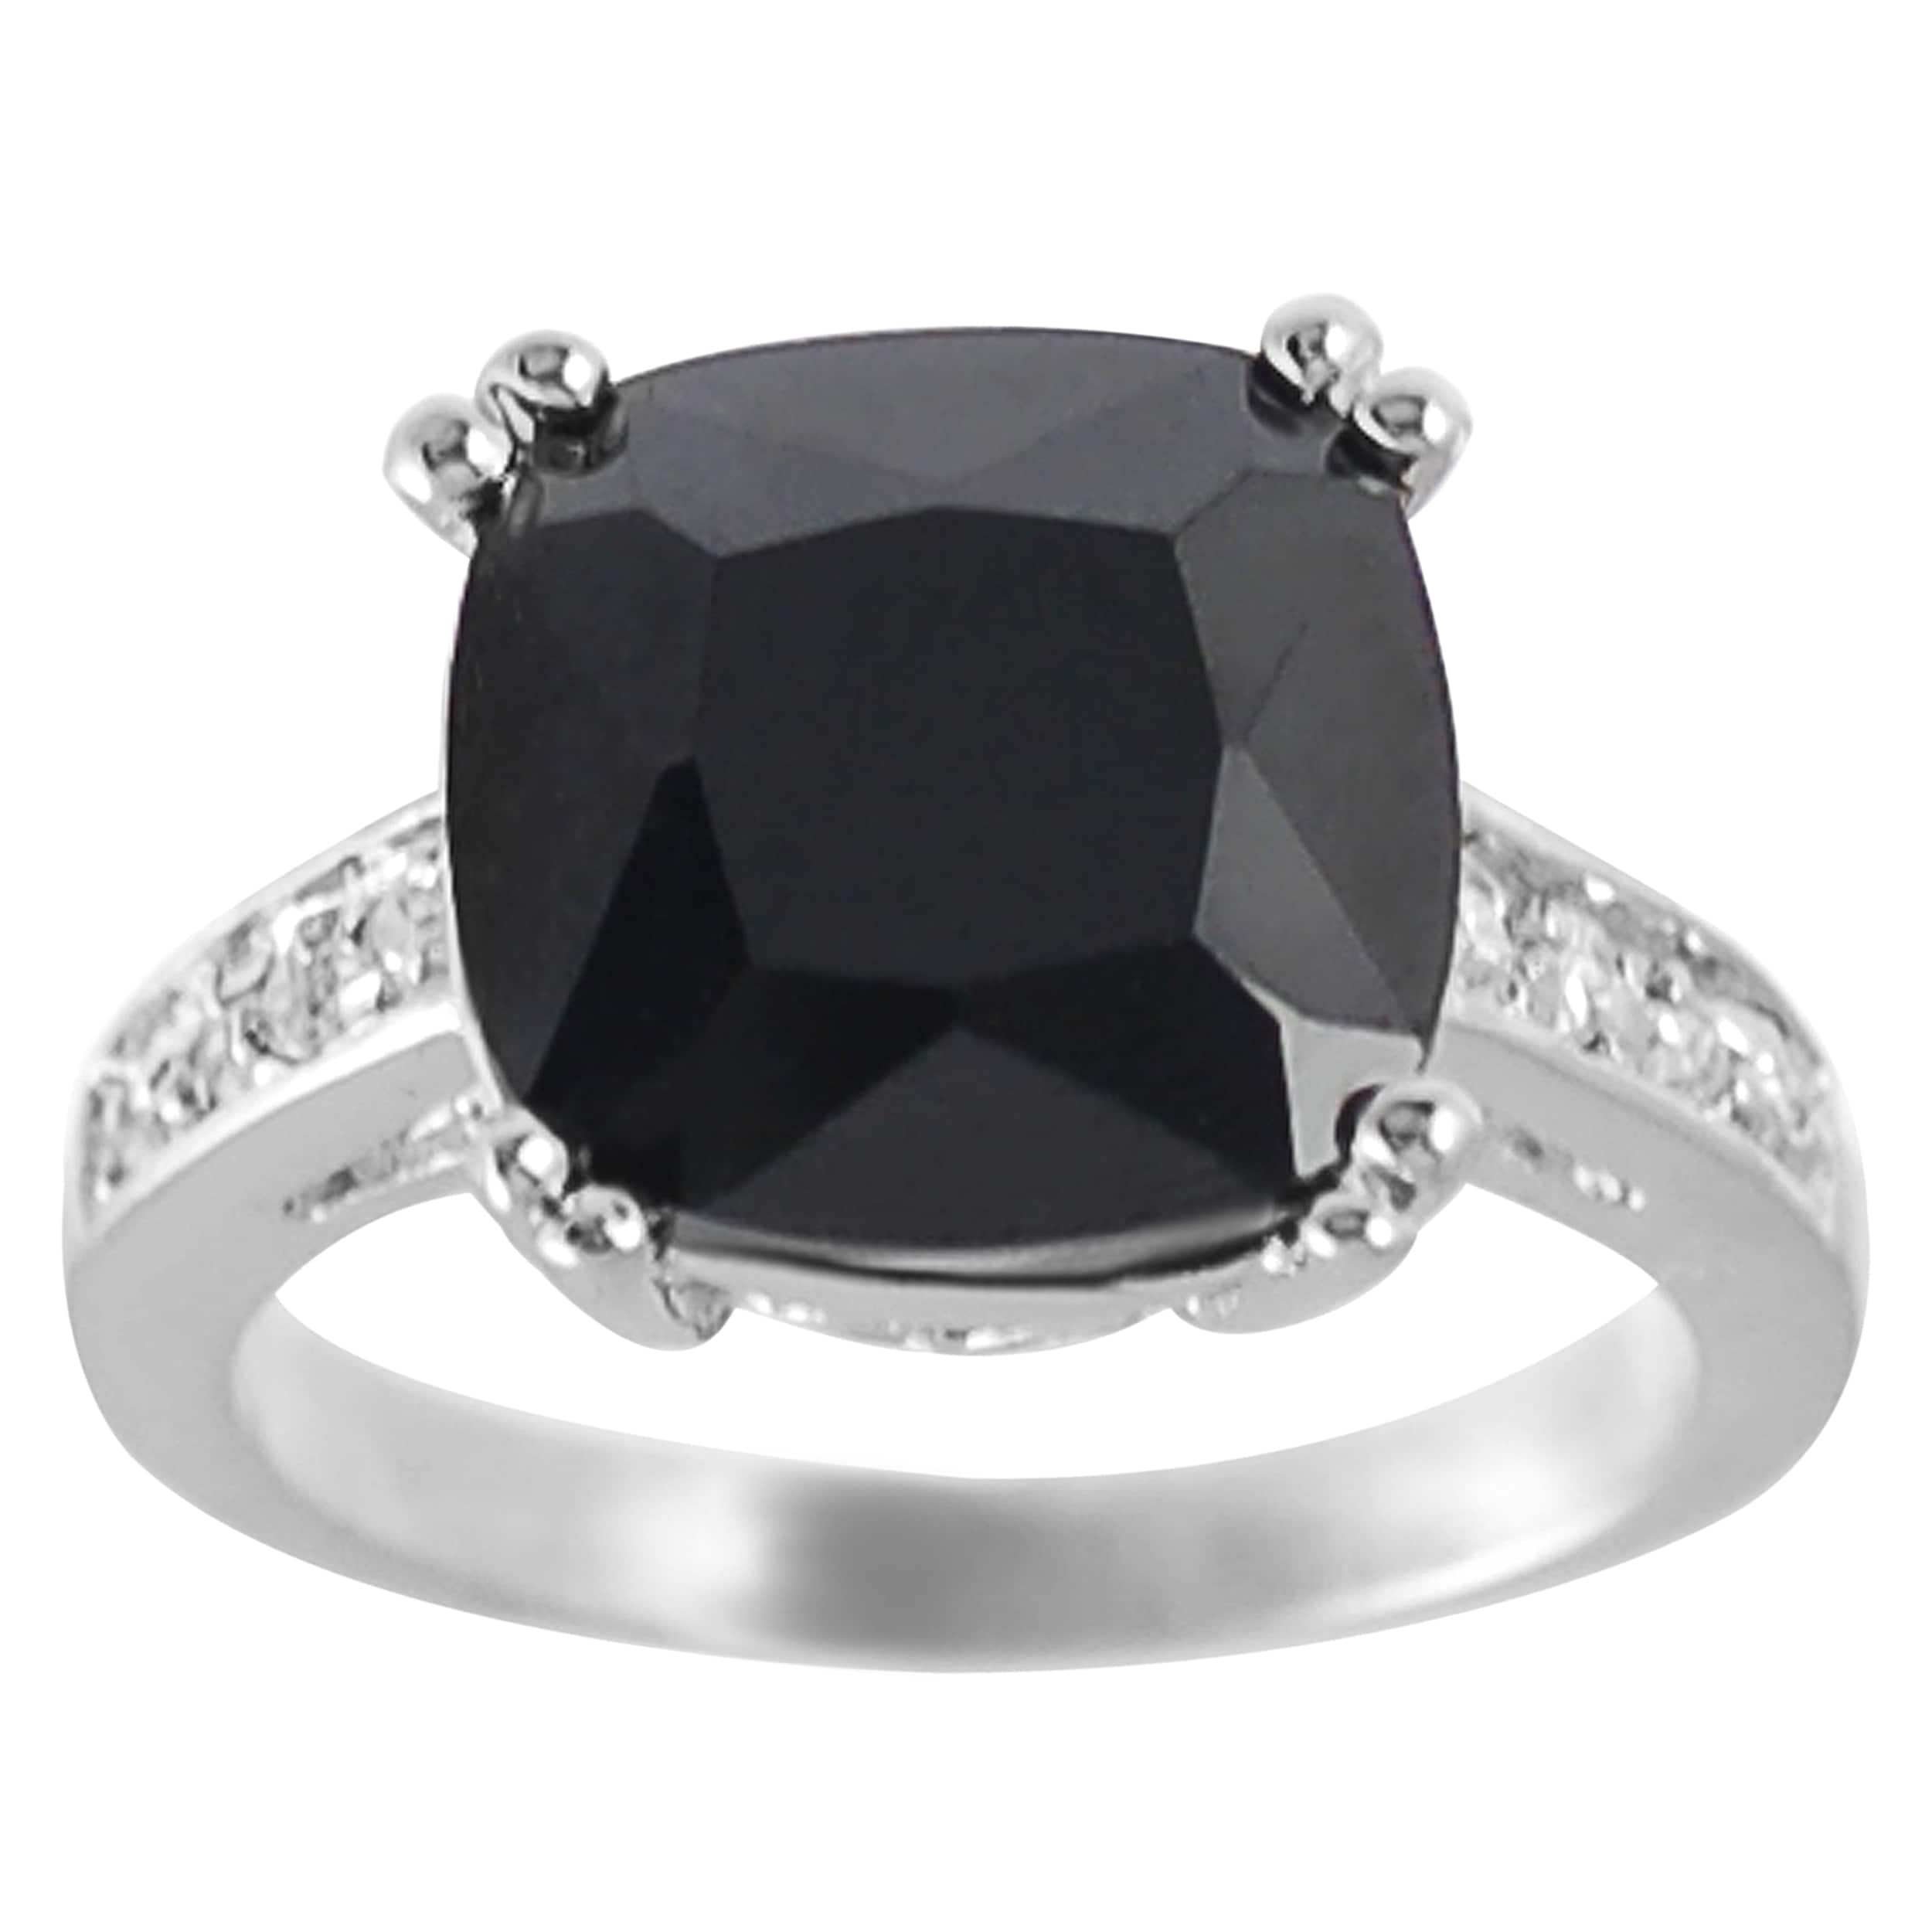 51f084c8a71 Shop Journee Collection Rhodium-plated Black Cushion-cut CZ Ring - Free  Shipping On Orders Over  45 - Overstock - 6719298